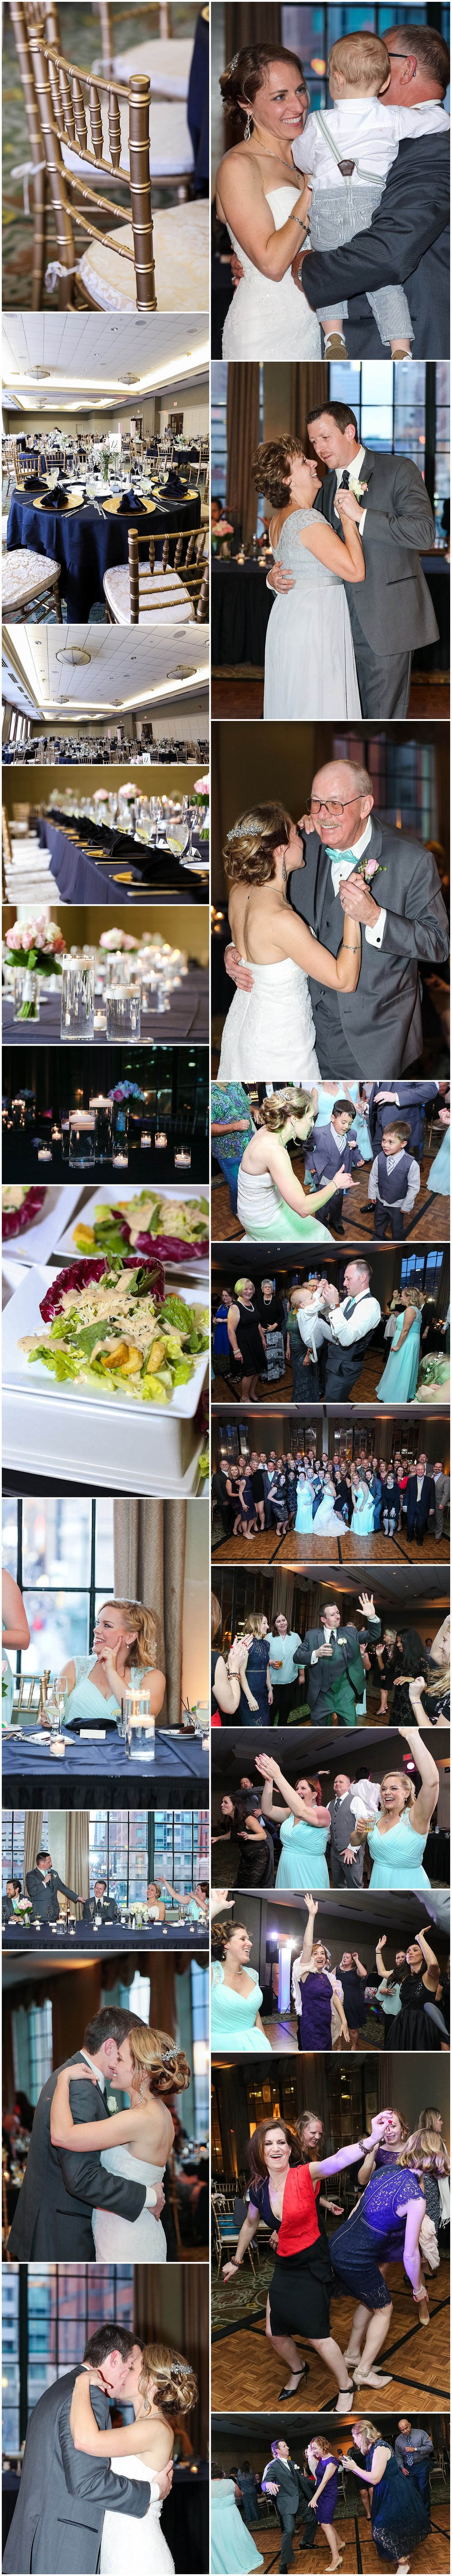 Crowne.Plaza.Indianapolis.Wedding.10.jpg